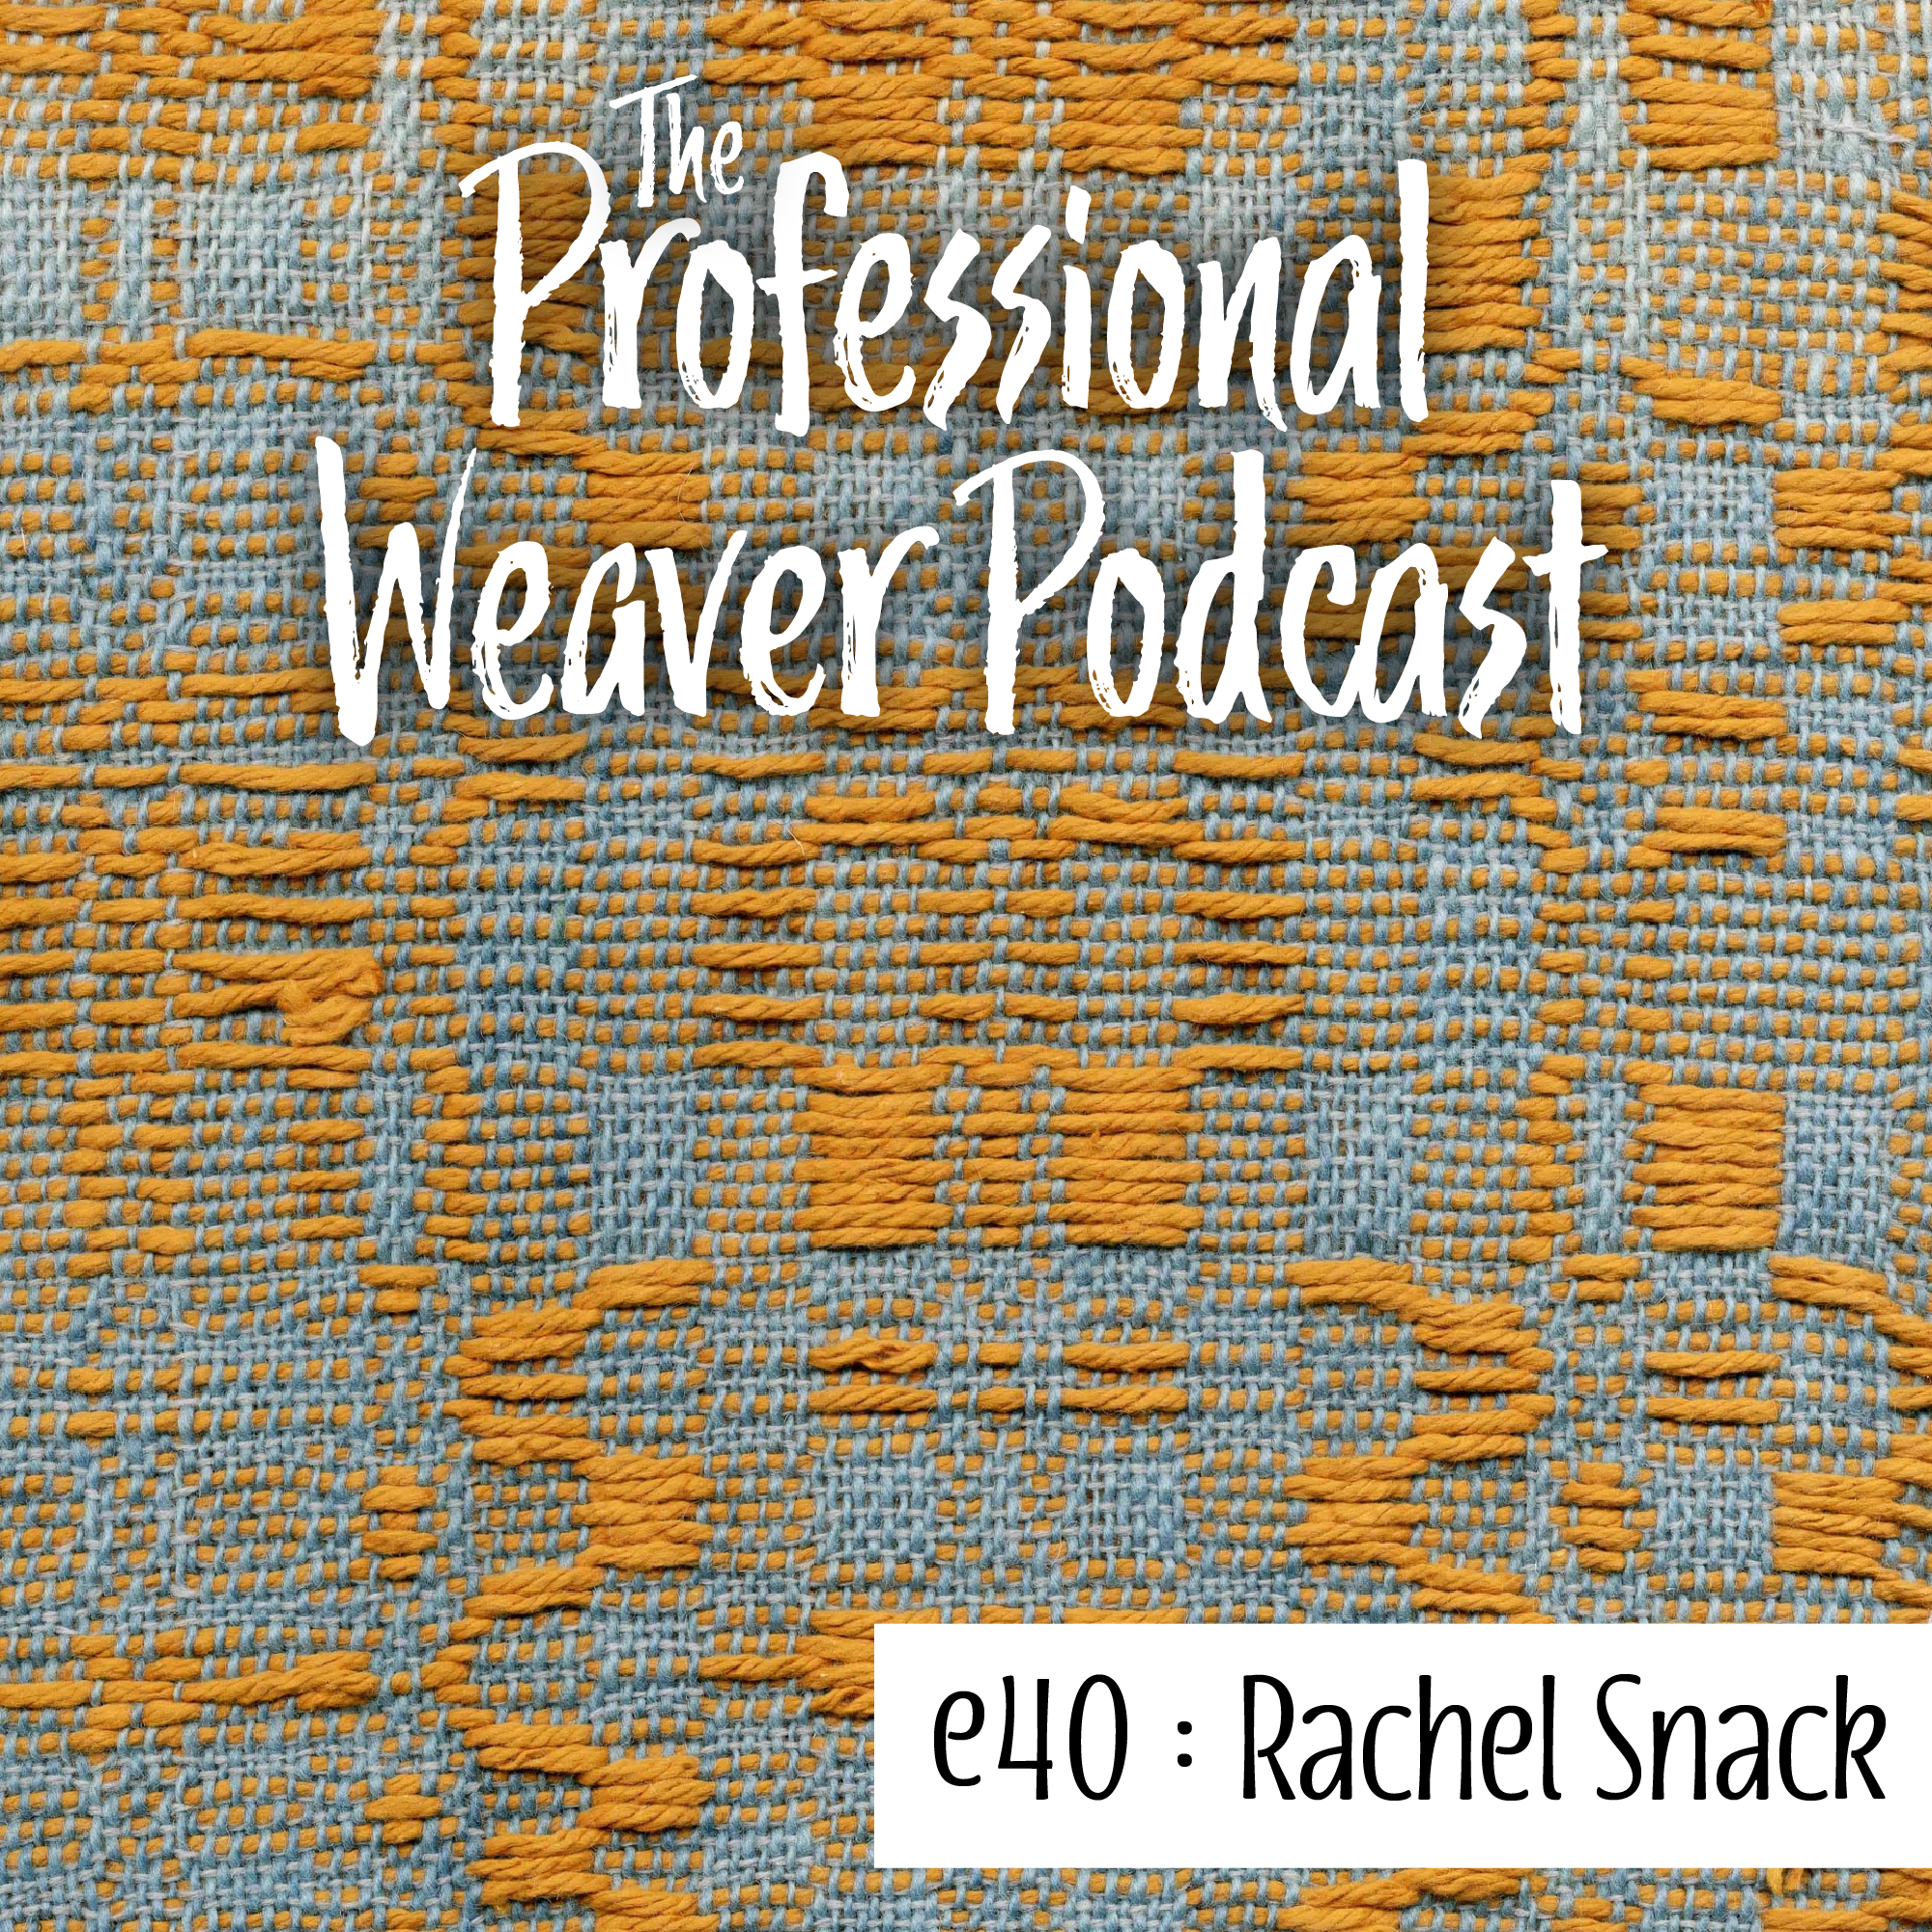 S2E10 : Rachel Snack on finding weaving, starting Weaver House, her new podcast, and more!